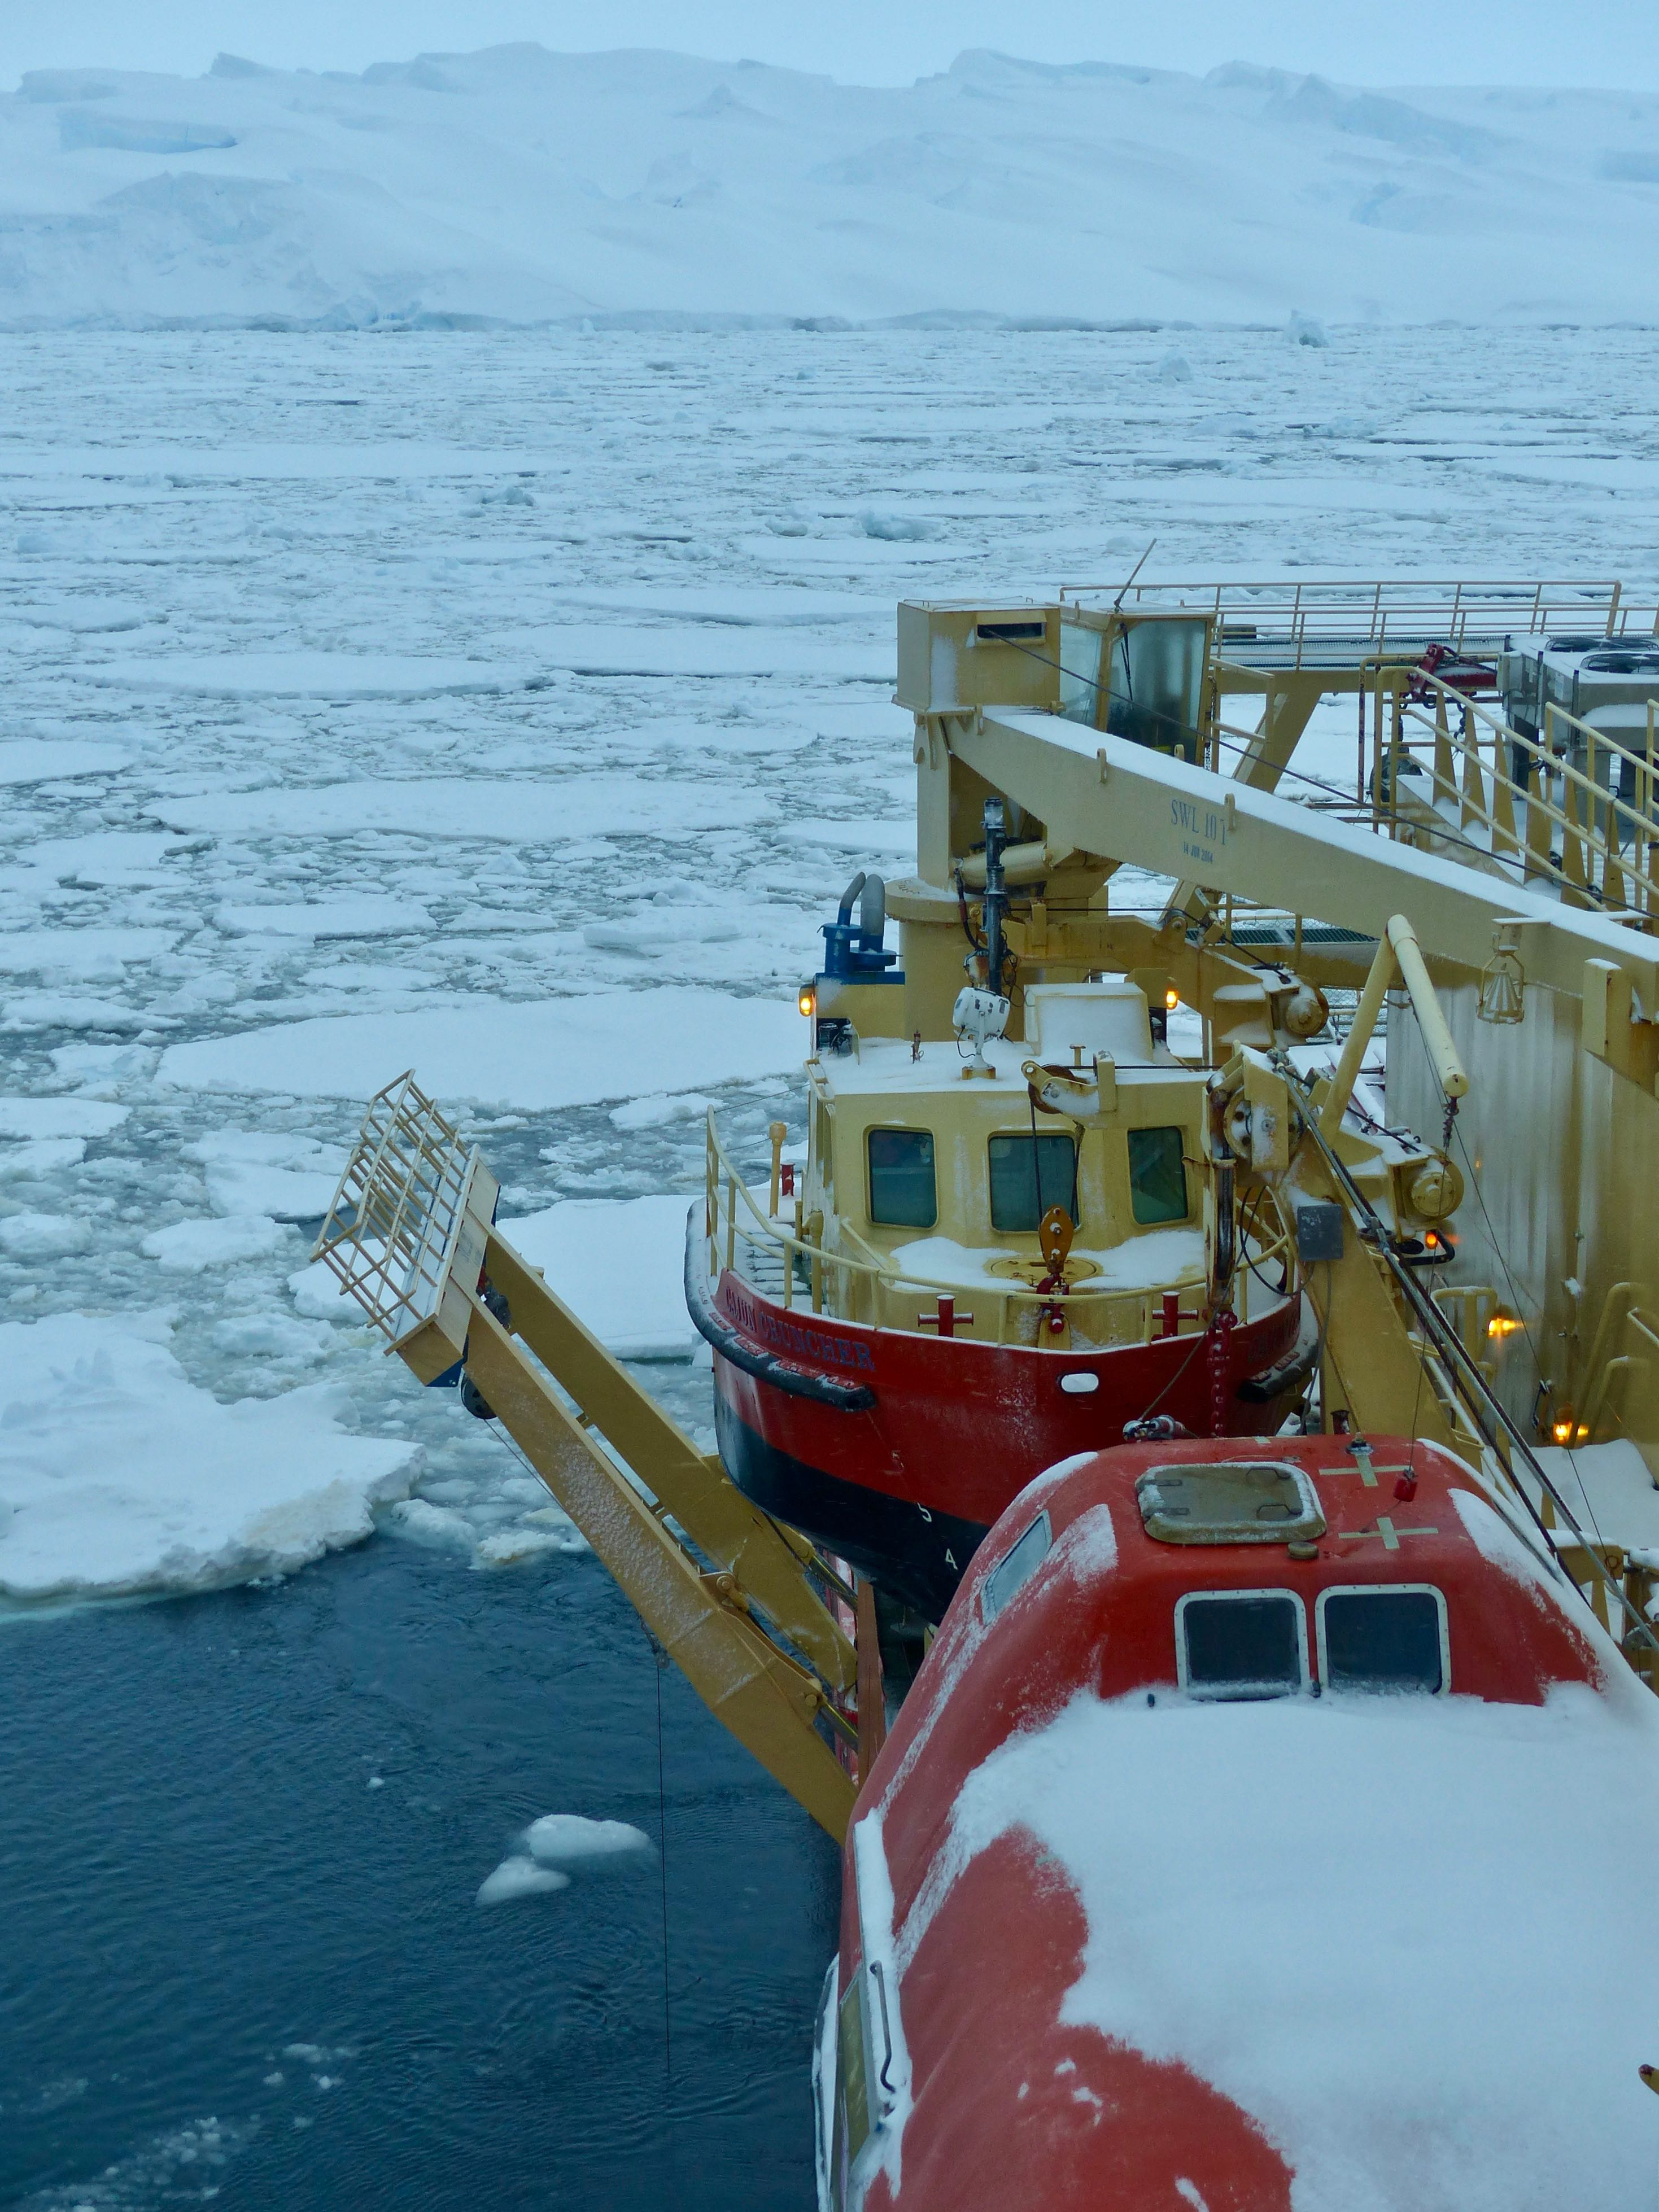 The Palmer sits a short distance from a giant iceberg and Thwaites ice shelf within sea ice that has moved here in the last few hours, beginning the ship's retrieval of the Hugin. Photo credit: Tasha Snow